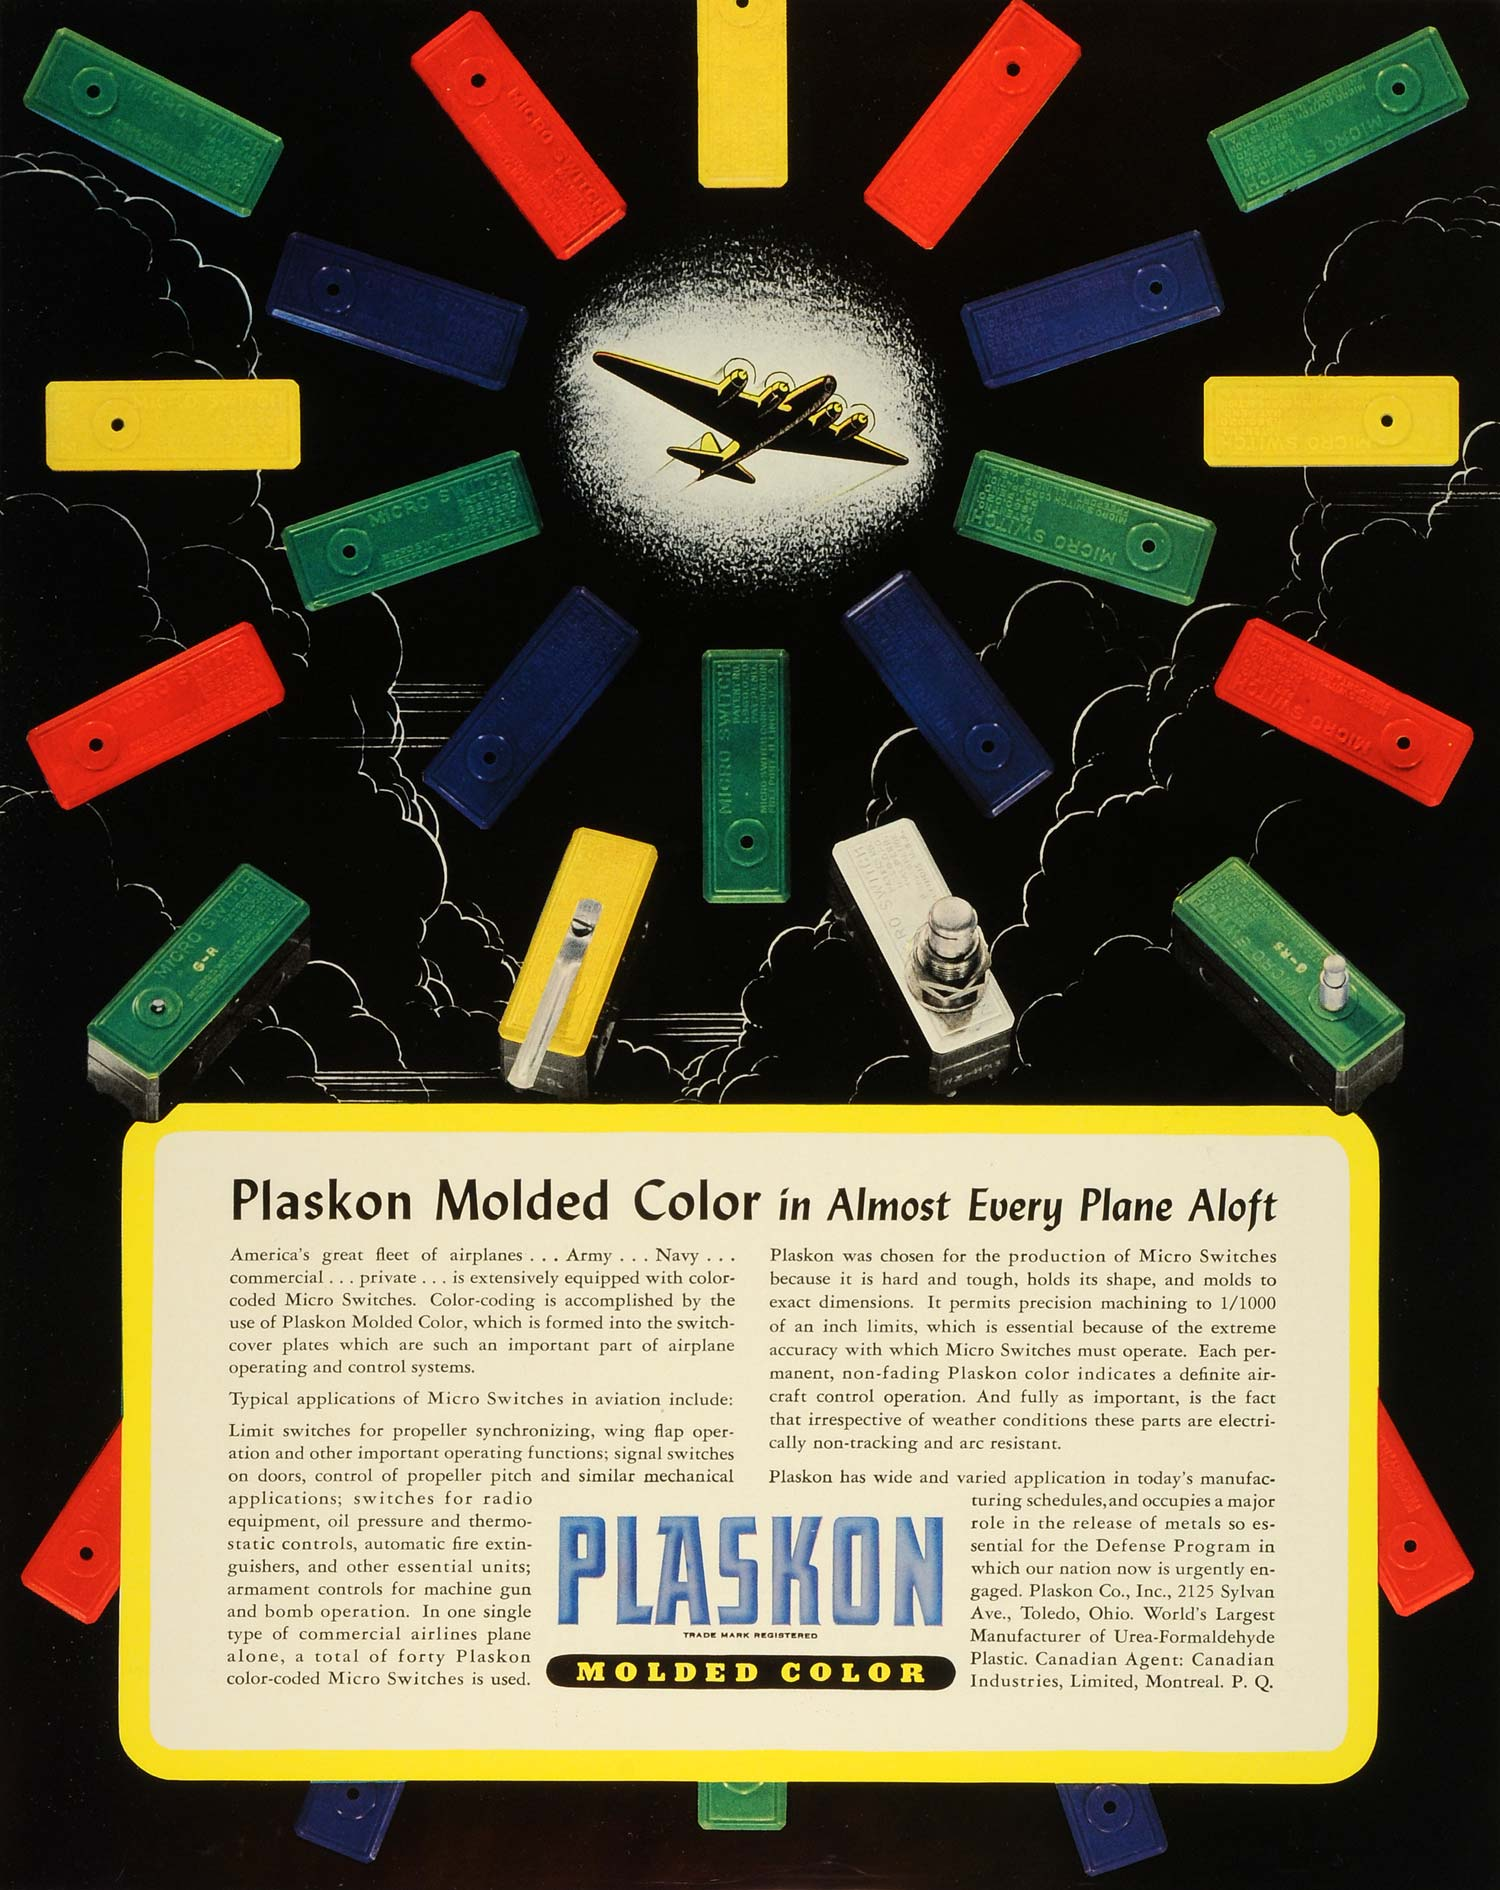 1941 Ad Plaskon Molded Color Coding Micro Switches Airplanes Control System FZ5